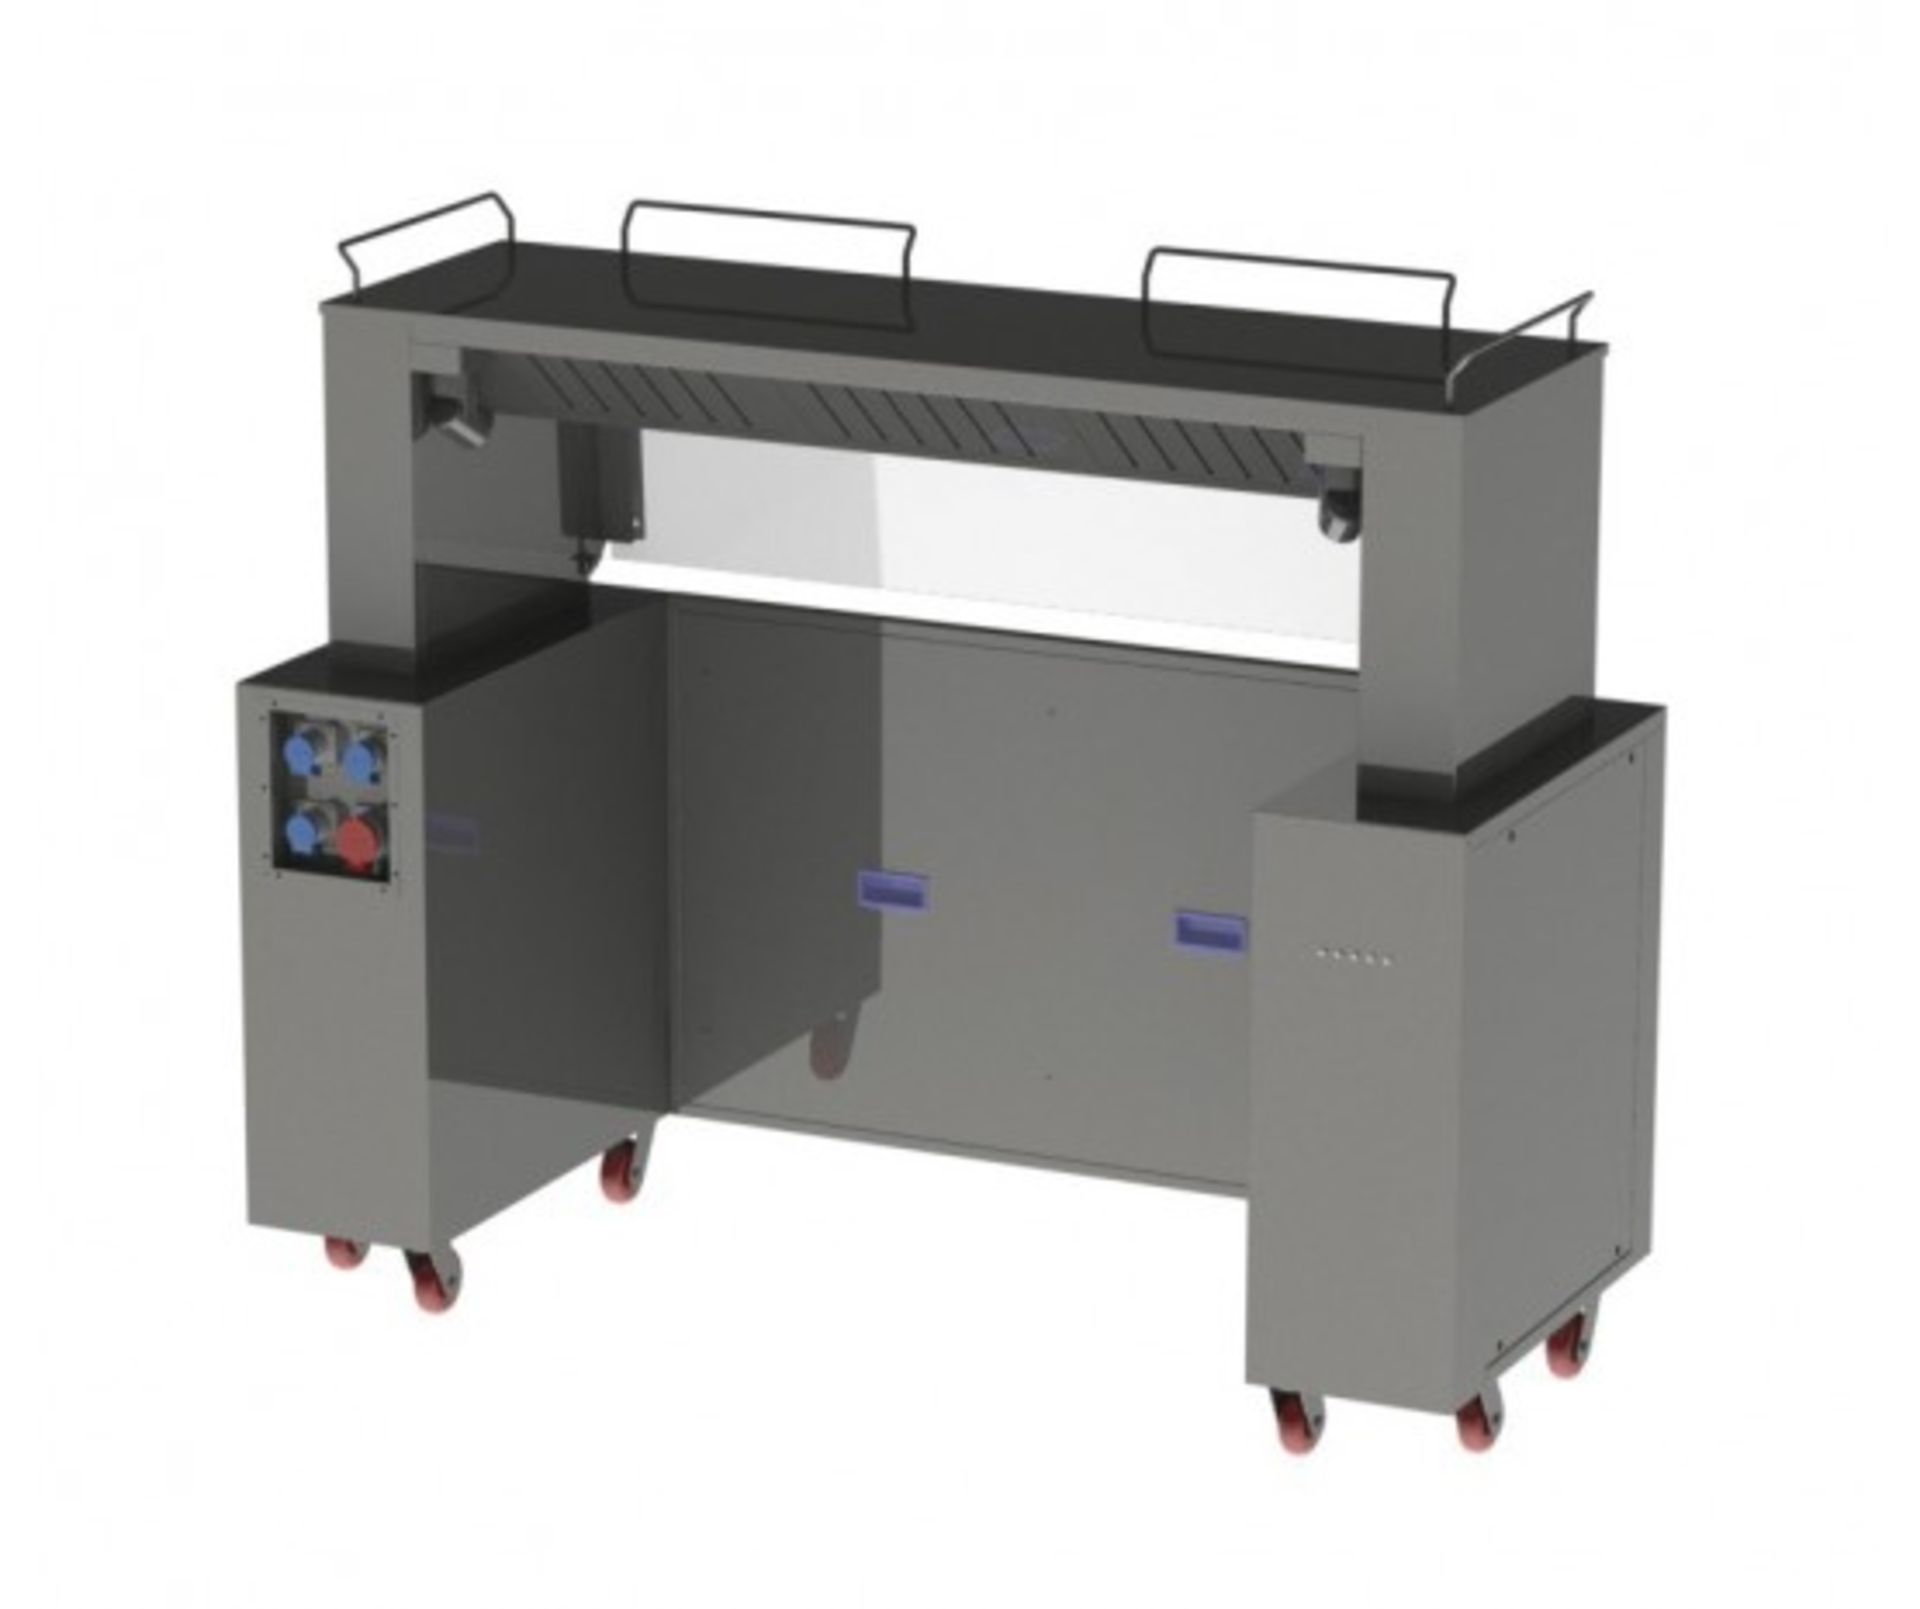 Lot 4 - Front cooking station RMBEFCS-03 with carbon filtration, ideal for show cooking, 3 phase electric, n